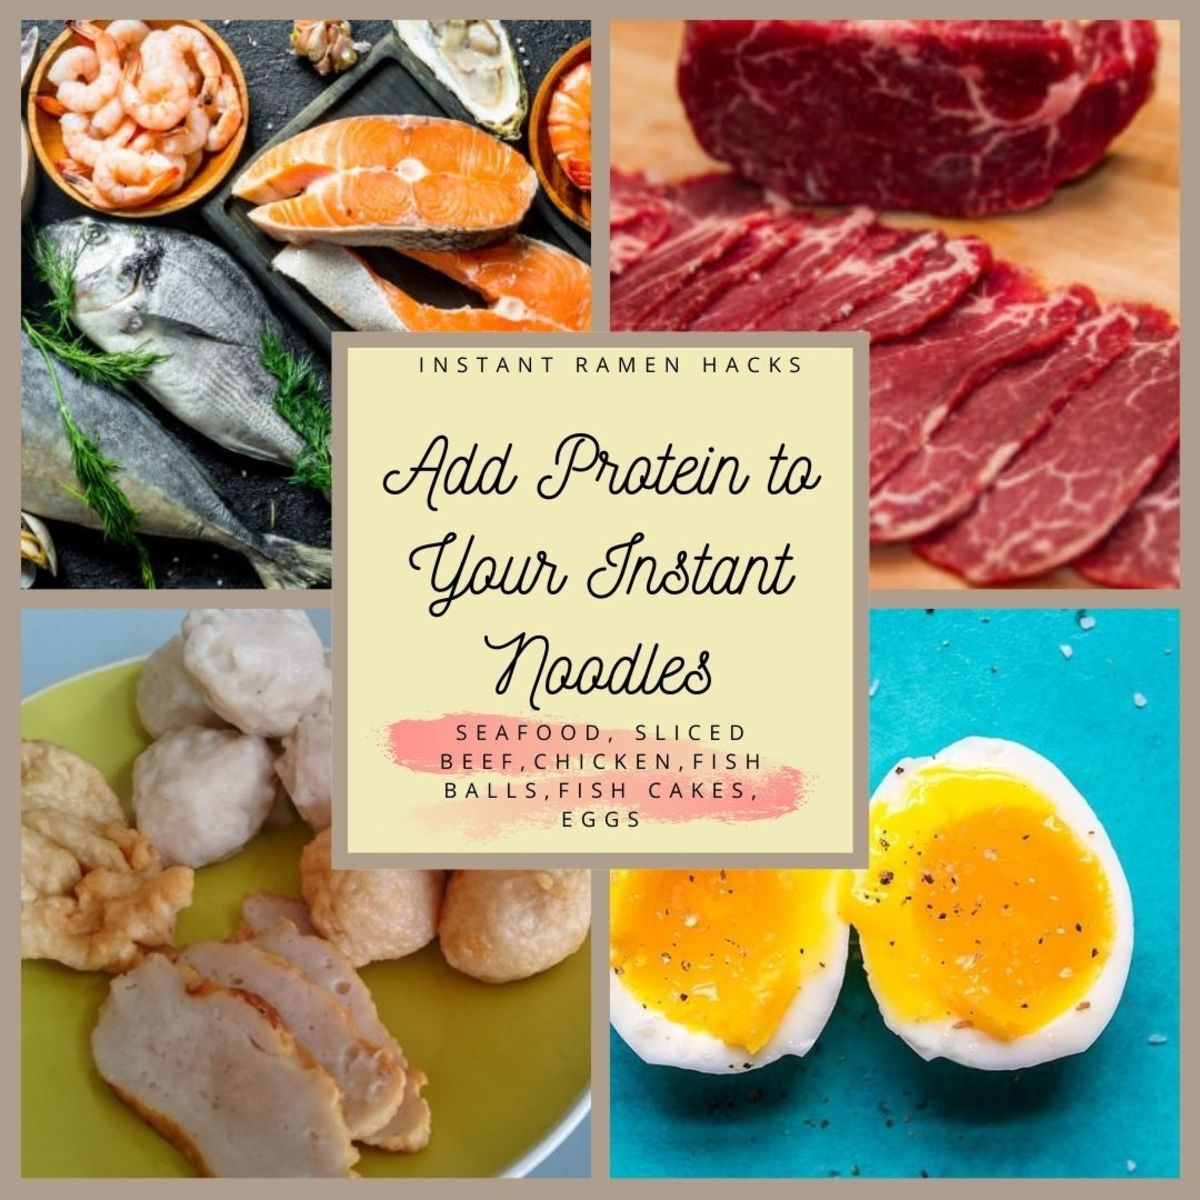 How to make instant noodles better?Add protein for healthier instant noodles or ramen with eggs, prawns, fish ball, fish cakes, sliced beef or chicken